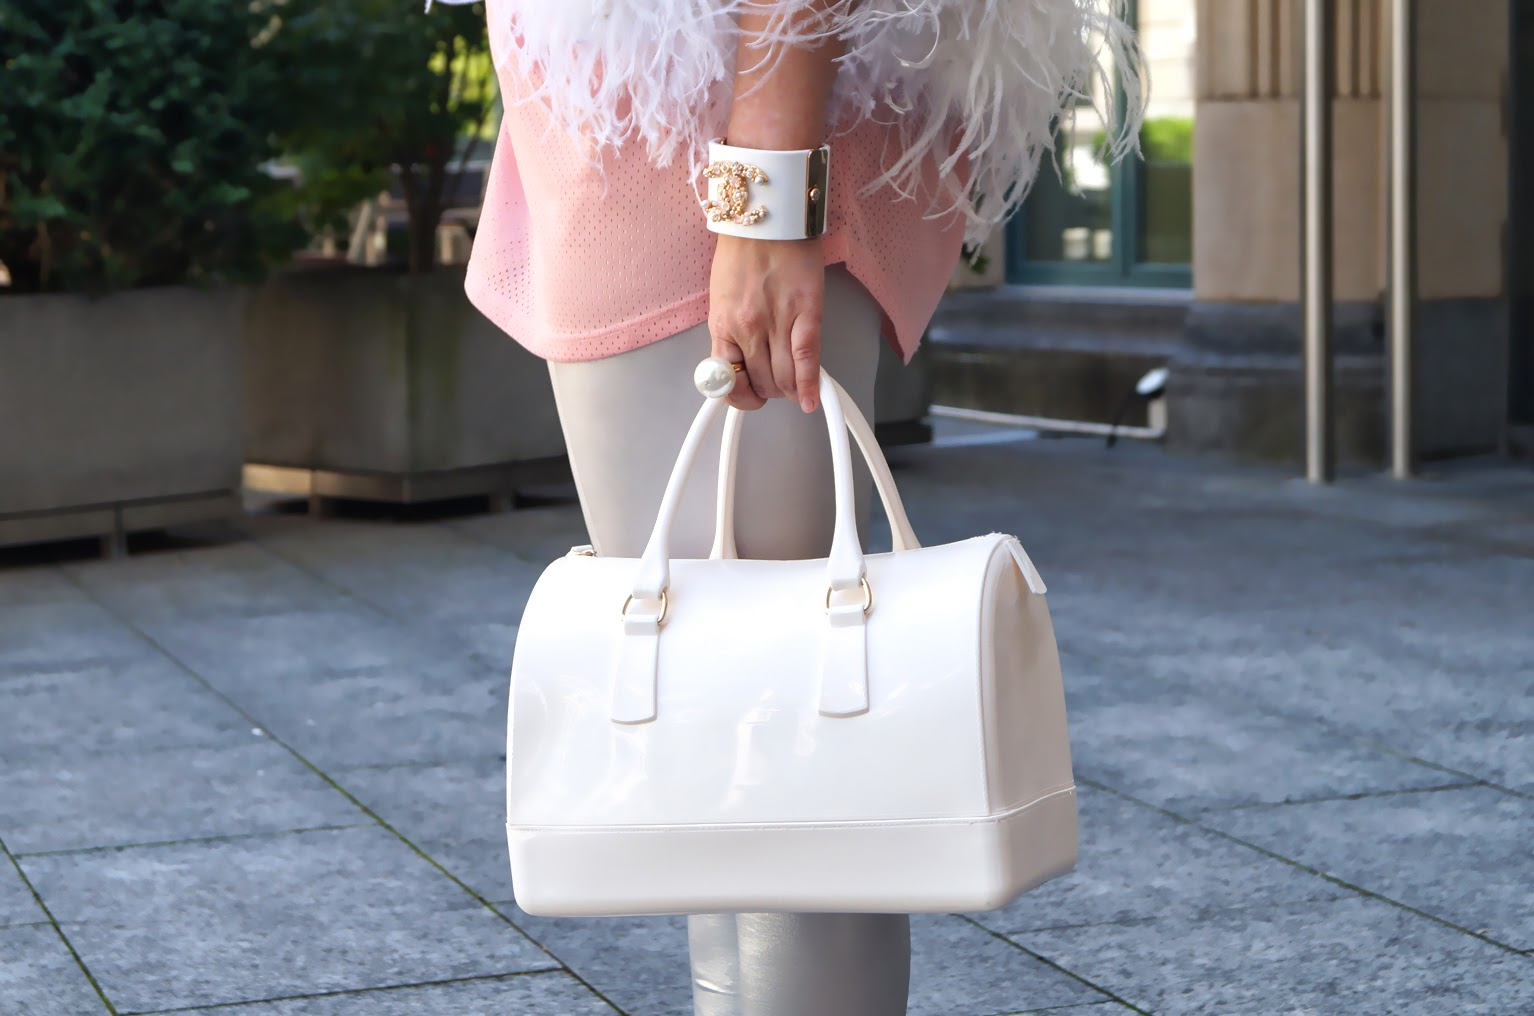 df9e3a3dea5bd top Zara, shoes Giuseppe Zanotti, handbag Furla, earrings H&M, bracelet  Chanel